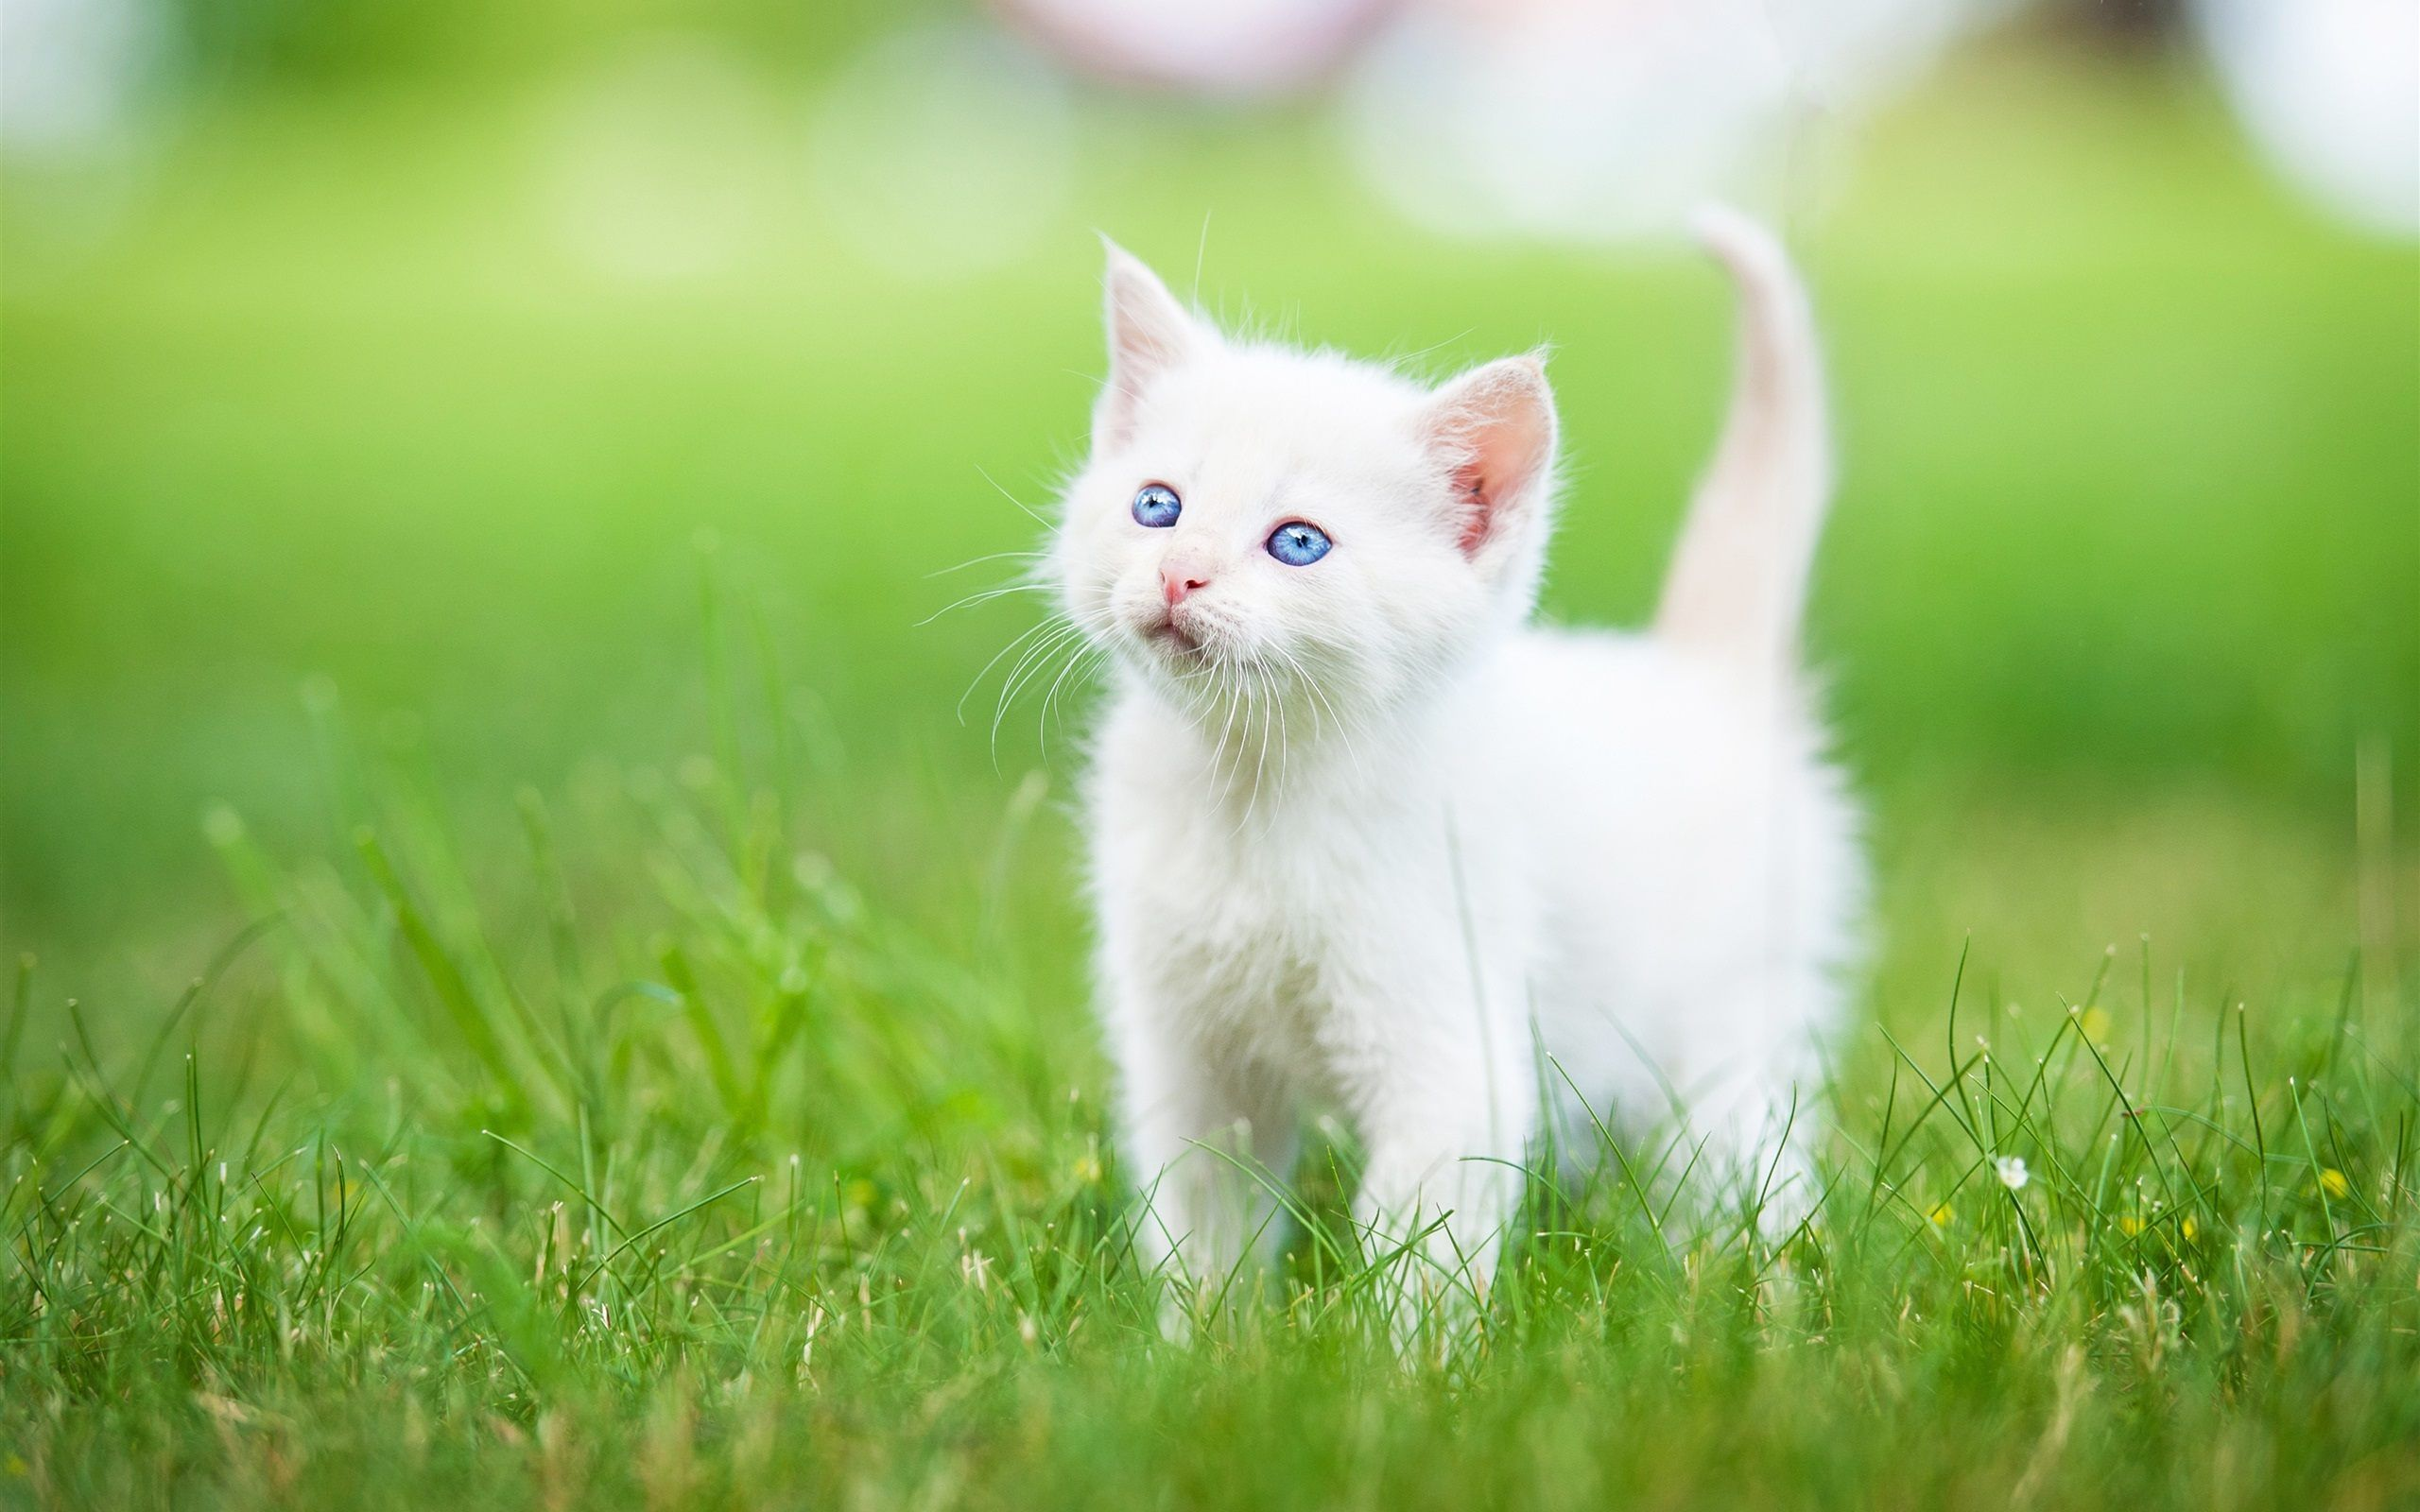 Related Image Cute Cat Wallpaper Cat Wallpaper Kittens Cutest